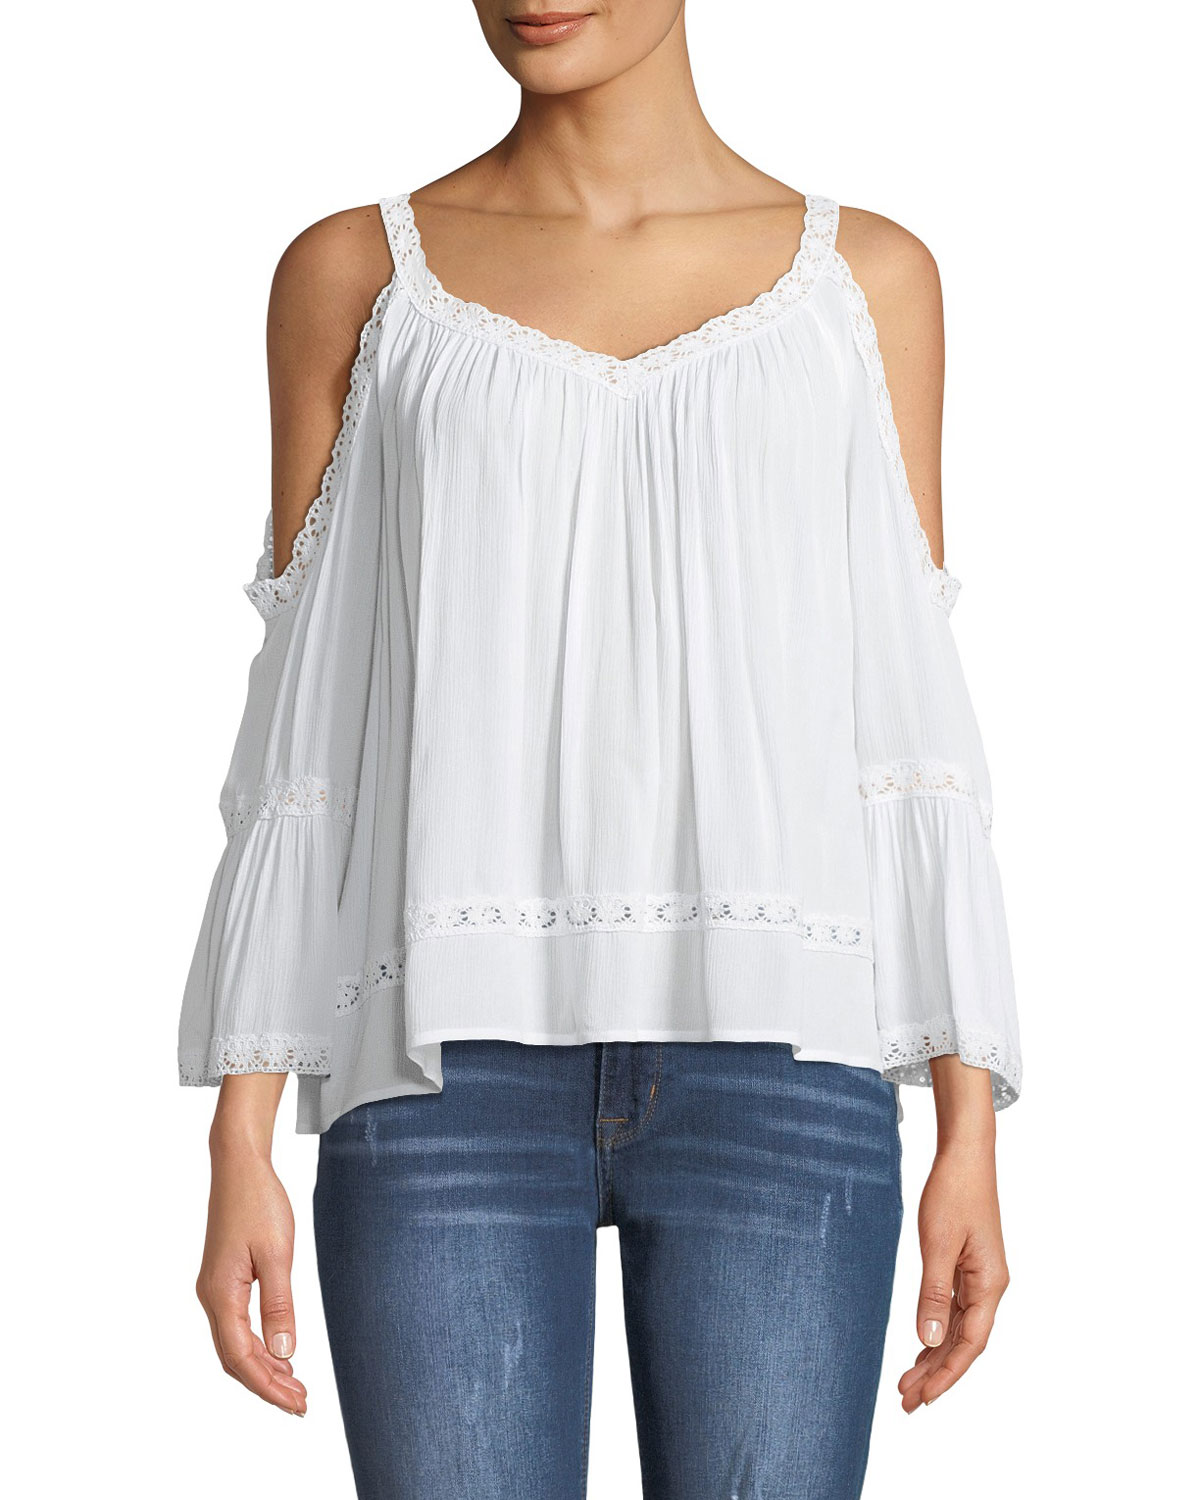 0f3e7aab2b6e86 Rebecca Minkoff Deneuve Eyelet Cold Shoulder Top